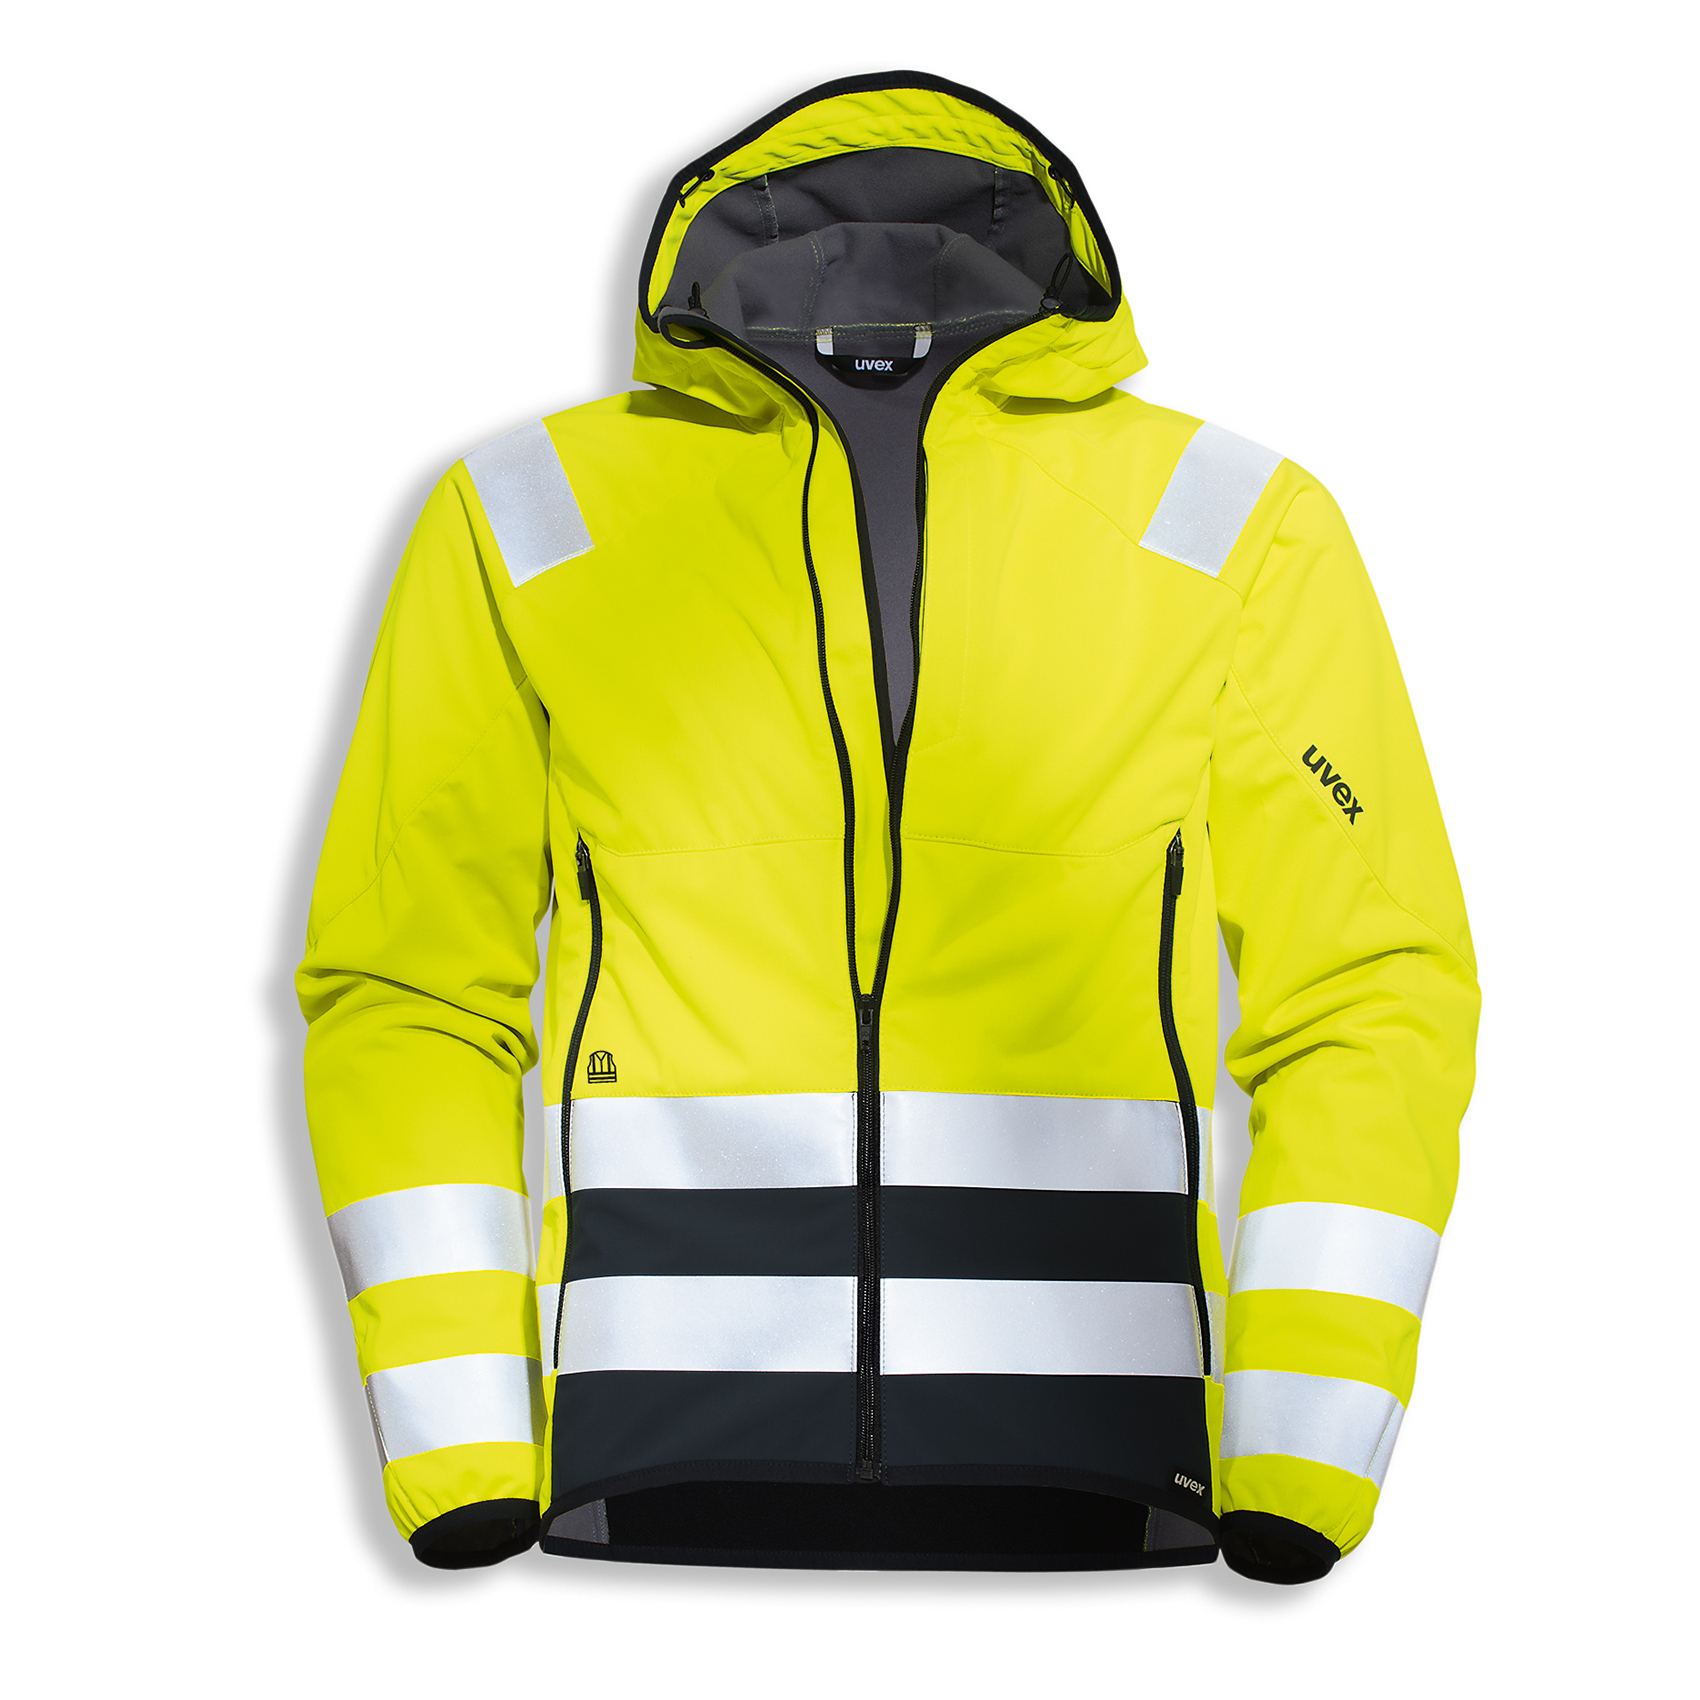 FlashStormSafety FlashStormSafety Softshell Protection Softshell Veste Veste Uvex Veste Uvex Softshell Protection MpqSVUGz